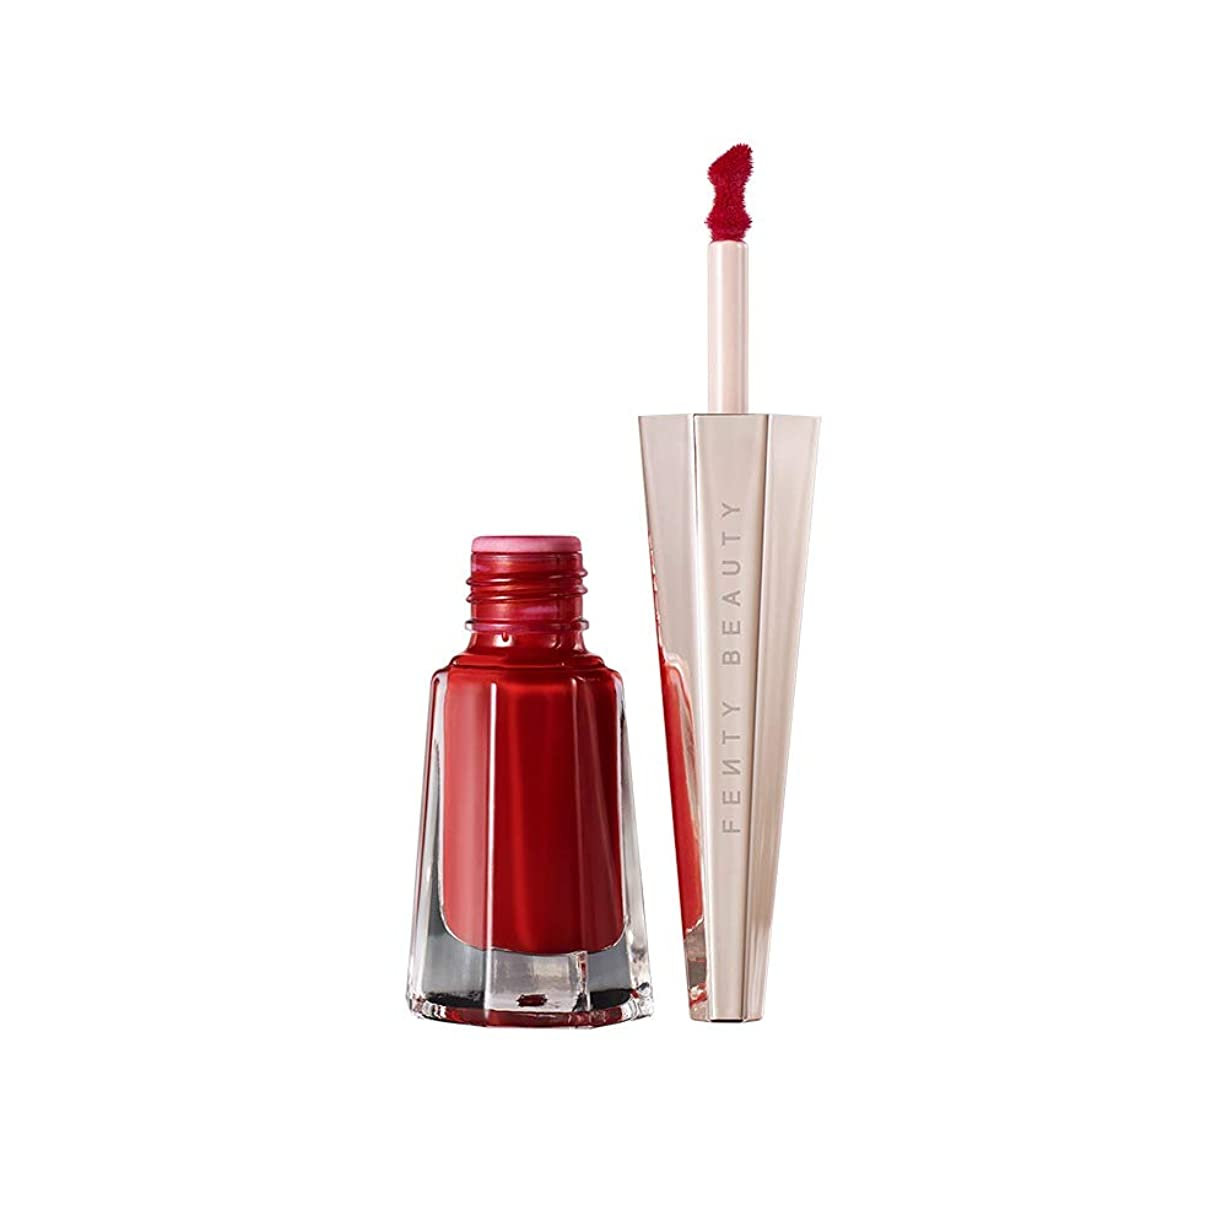 地平線回想交差点【並行輸入品】FENTY BEAUTY BY RIHANNA Stunna Lip Paint Longwear Fluid Lip Color Uncensored - perfect universal red